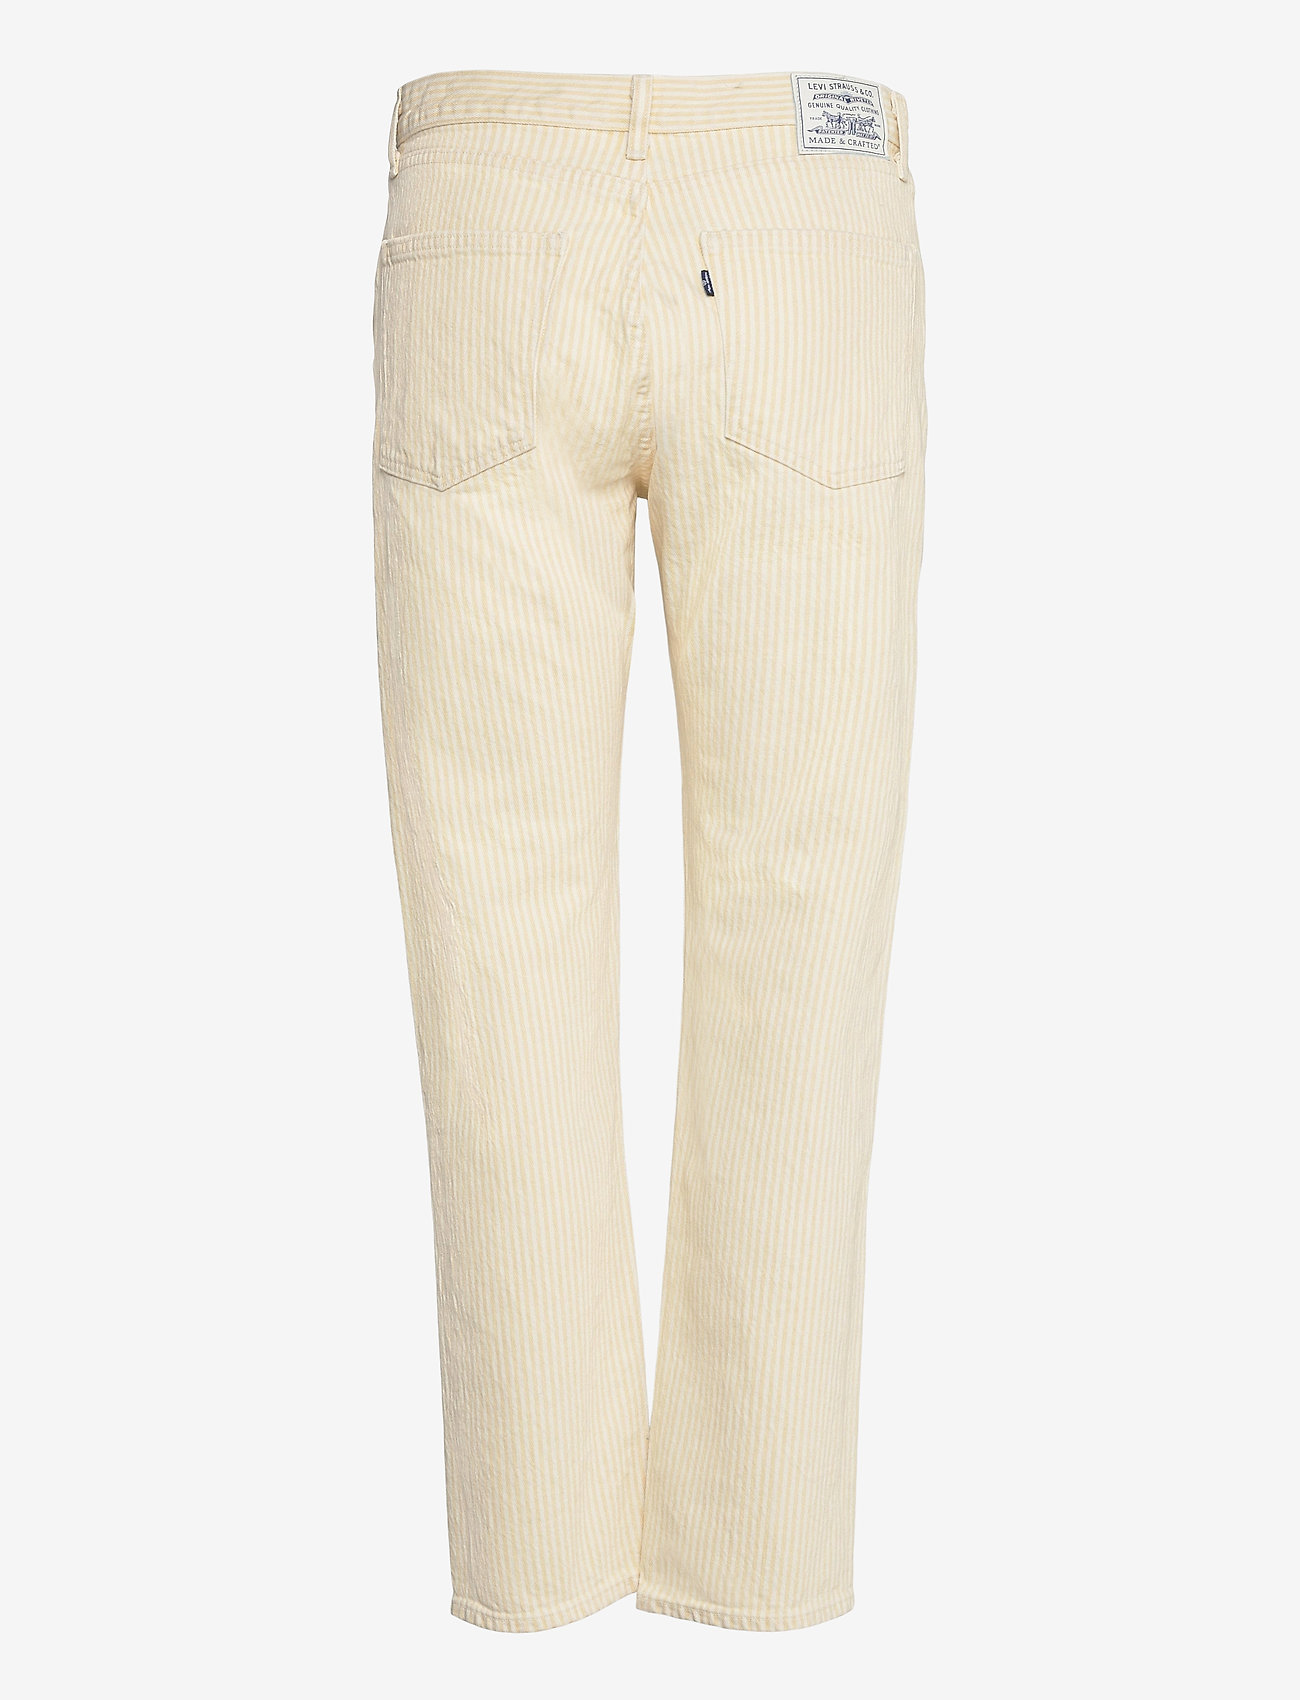 Levi's Made & Crafted - LMC PIPE STRAIGHT LMC SOLEIL - straight regular - yellows/oranges - 1